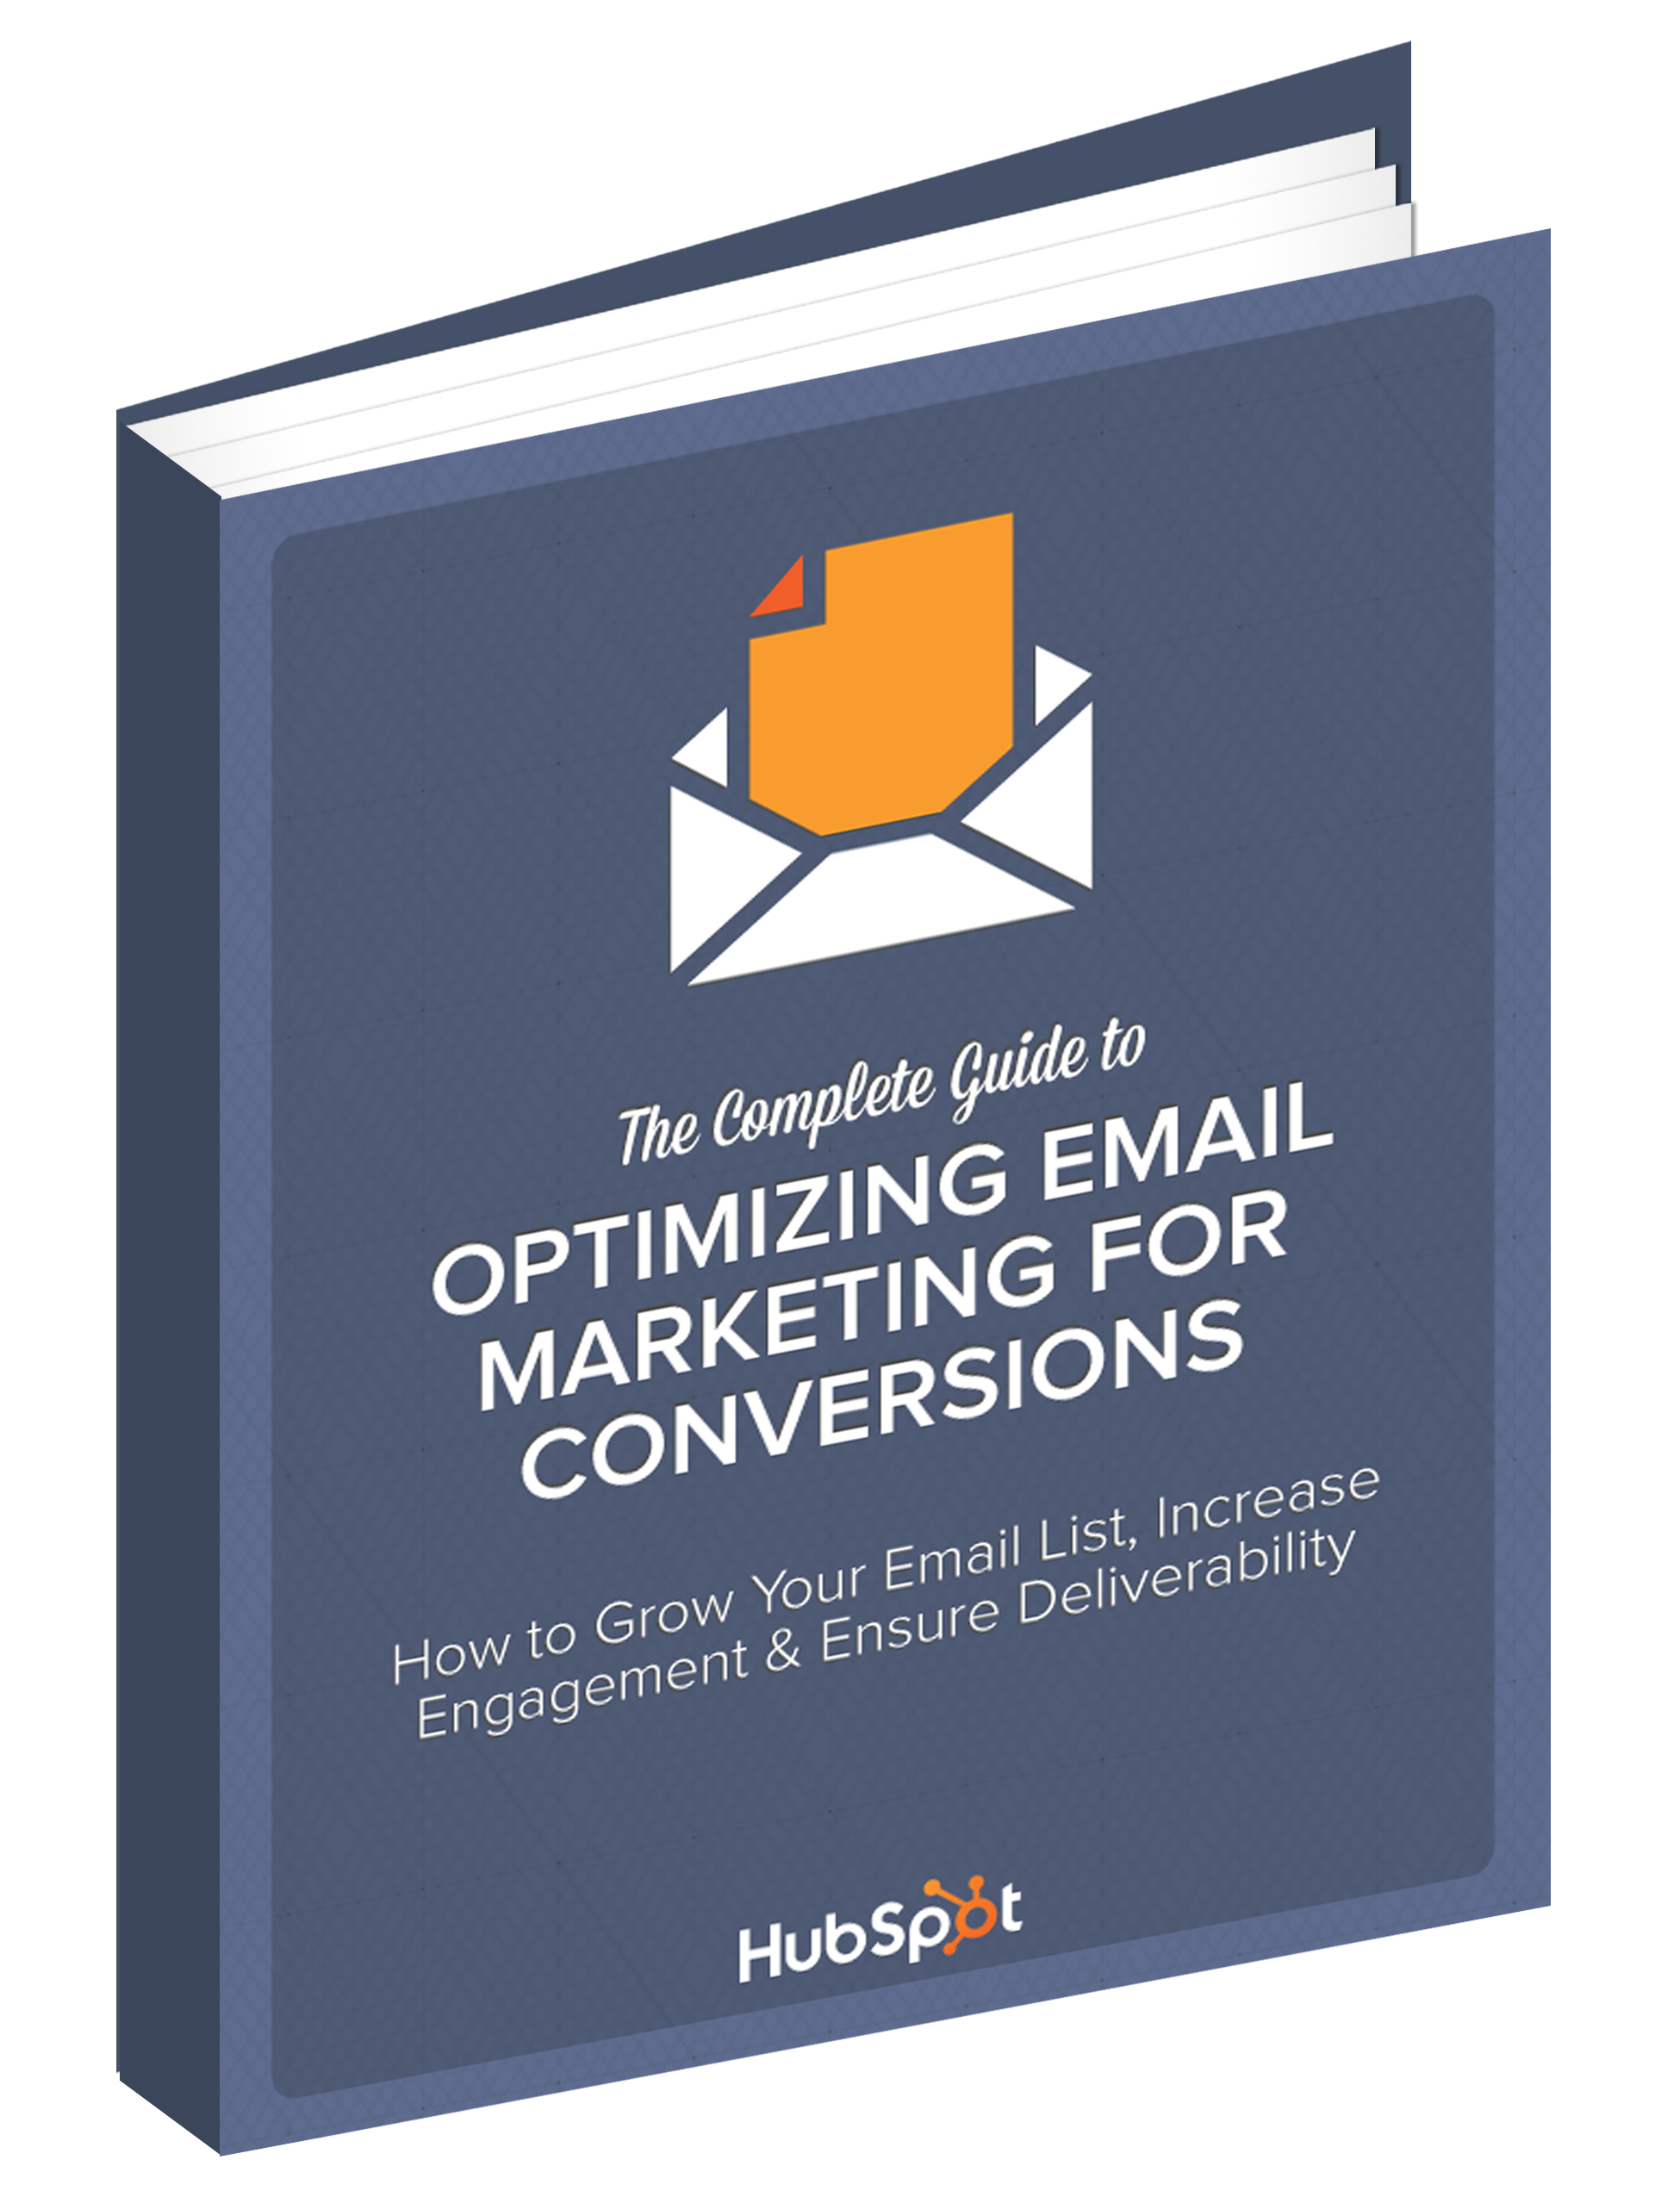 Emailmarketingforconversion